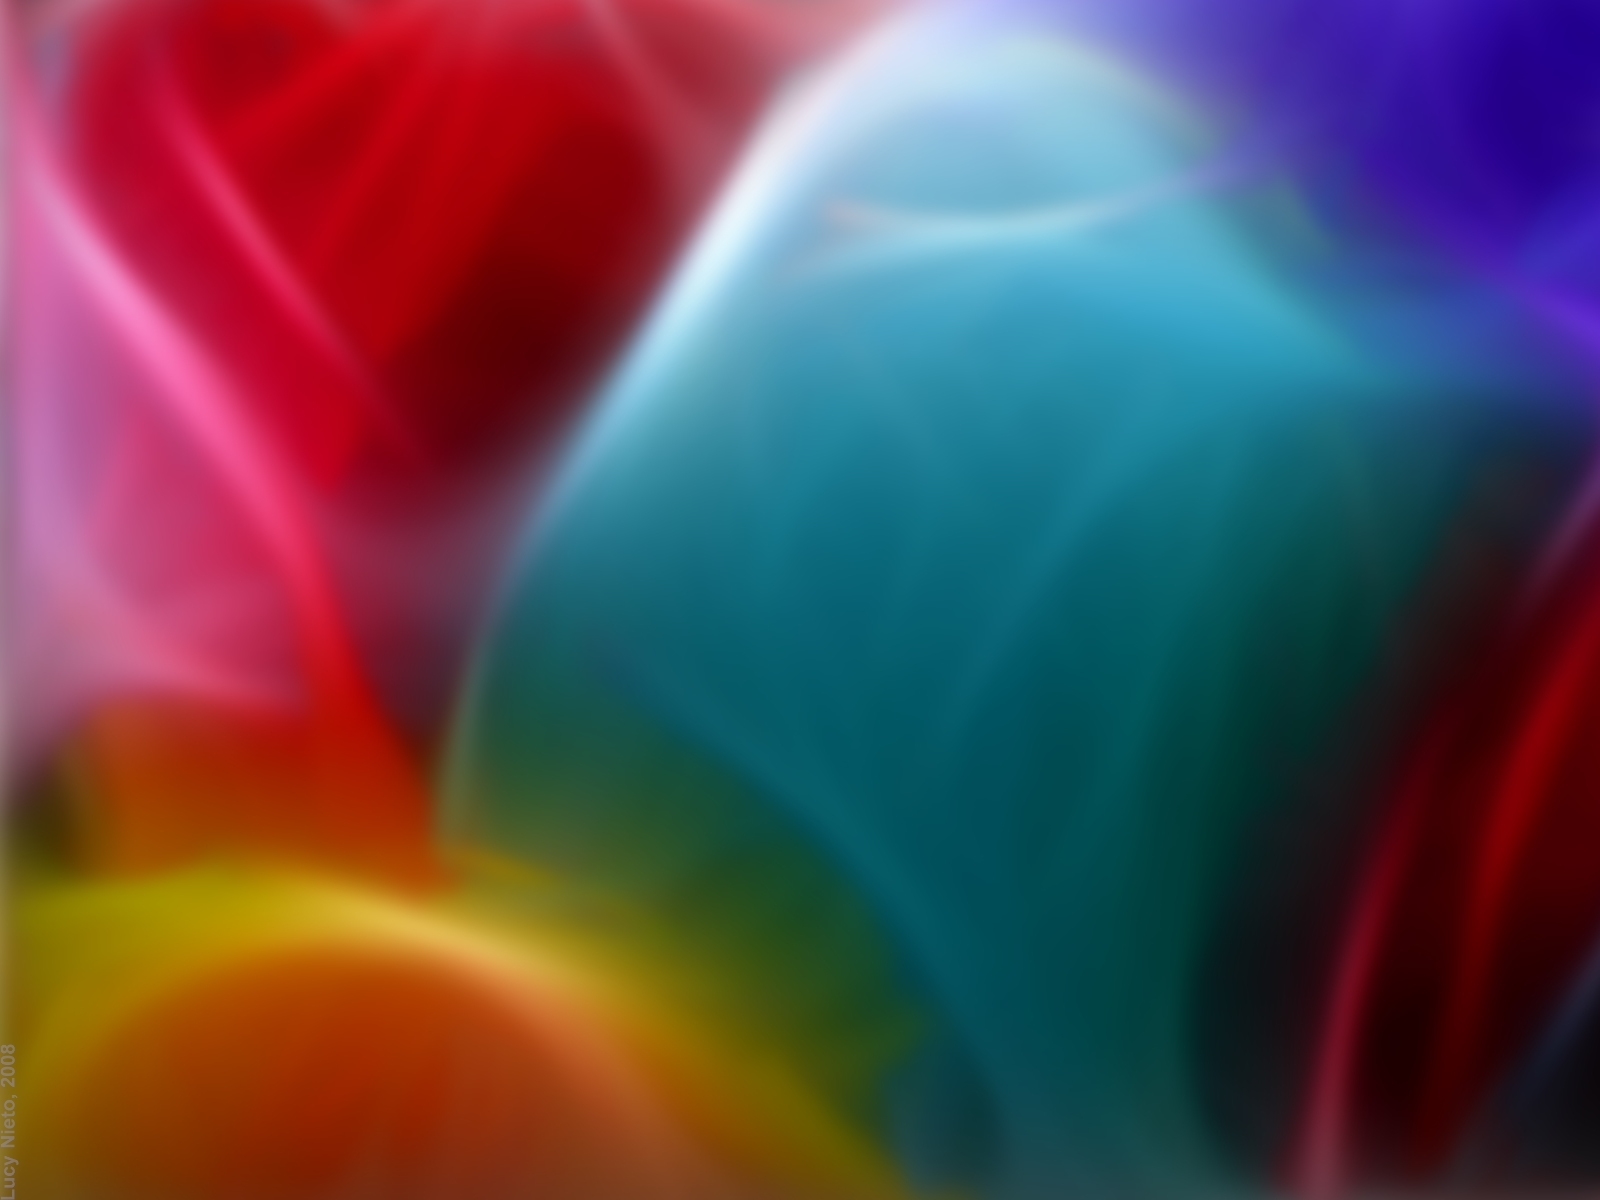 Abstract Wallpapers HD Nice Wallpapers 1600x1200